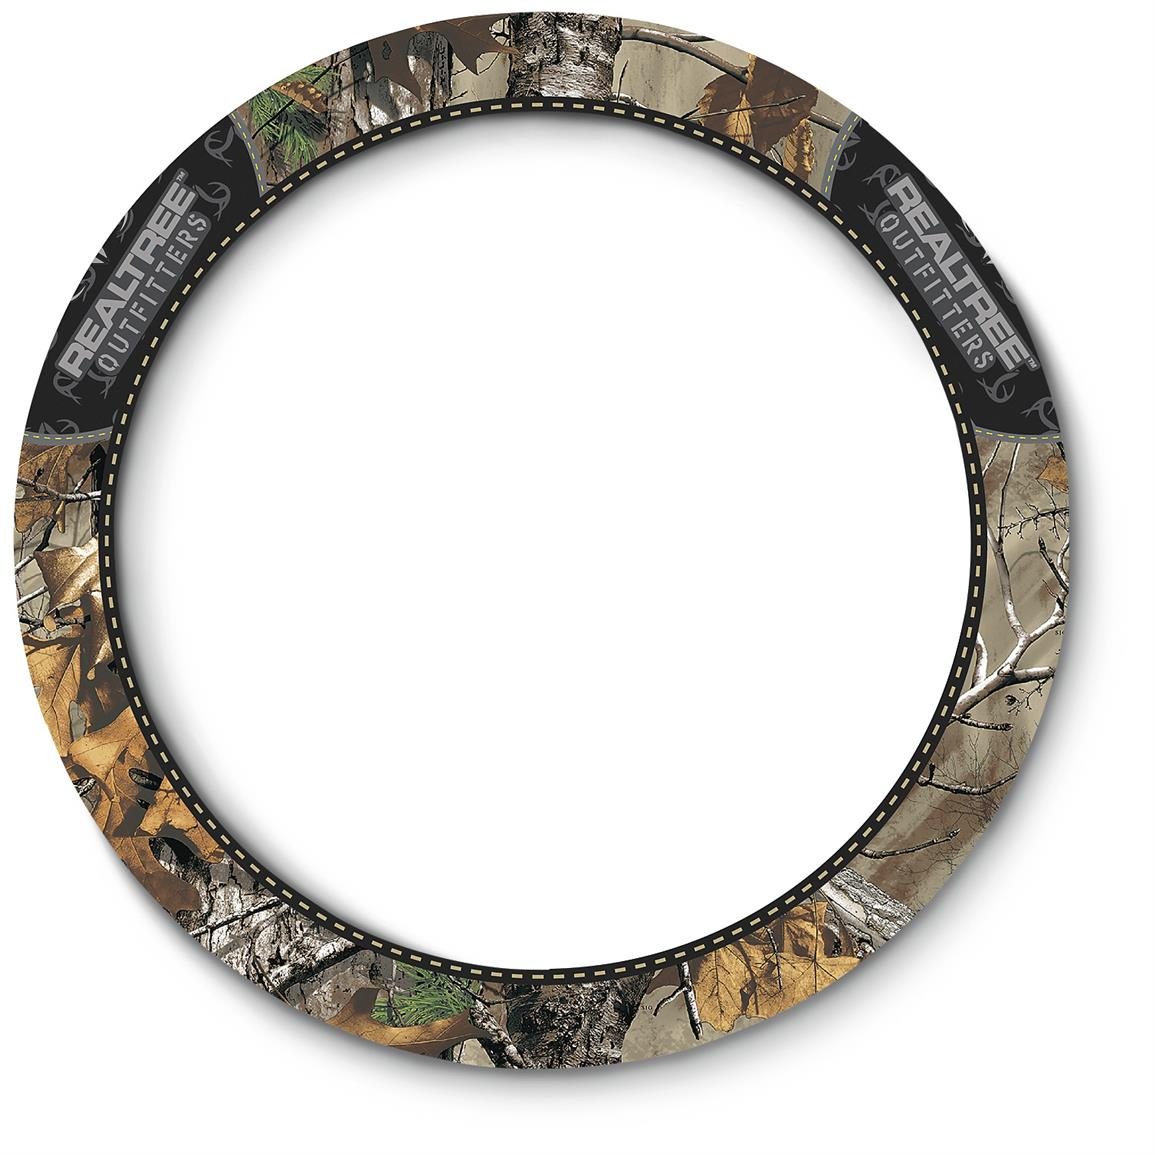 2-grip Universal Camo Steering Wheel Cover, Realtree Outfitters